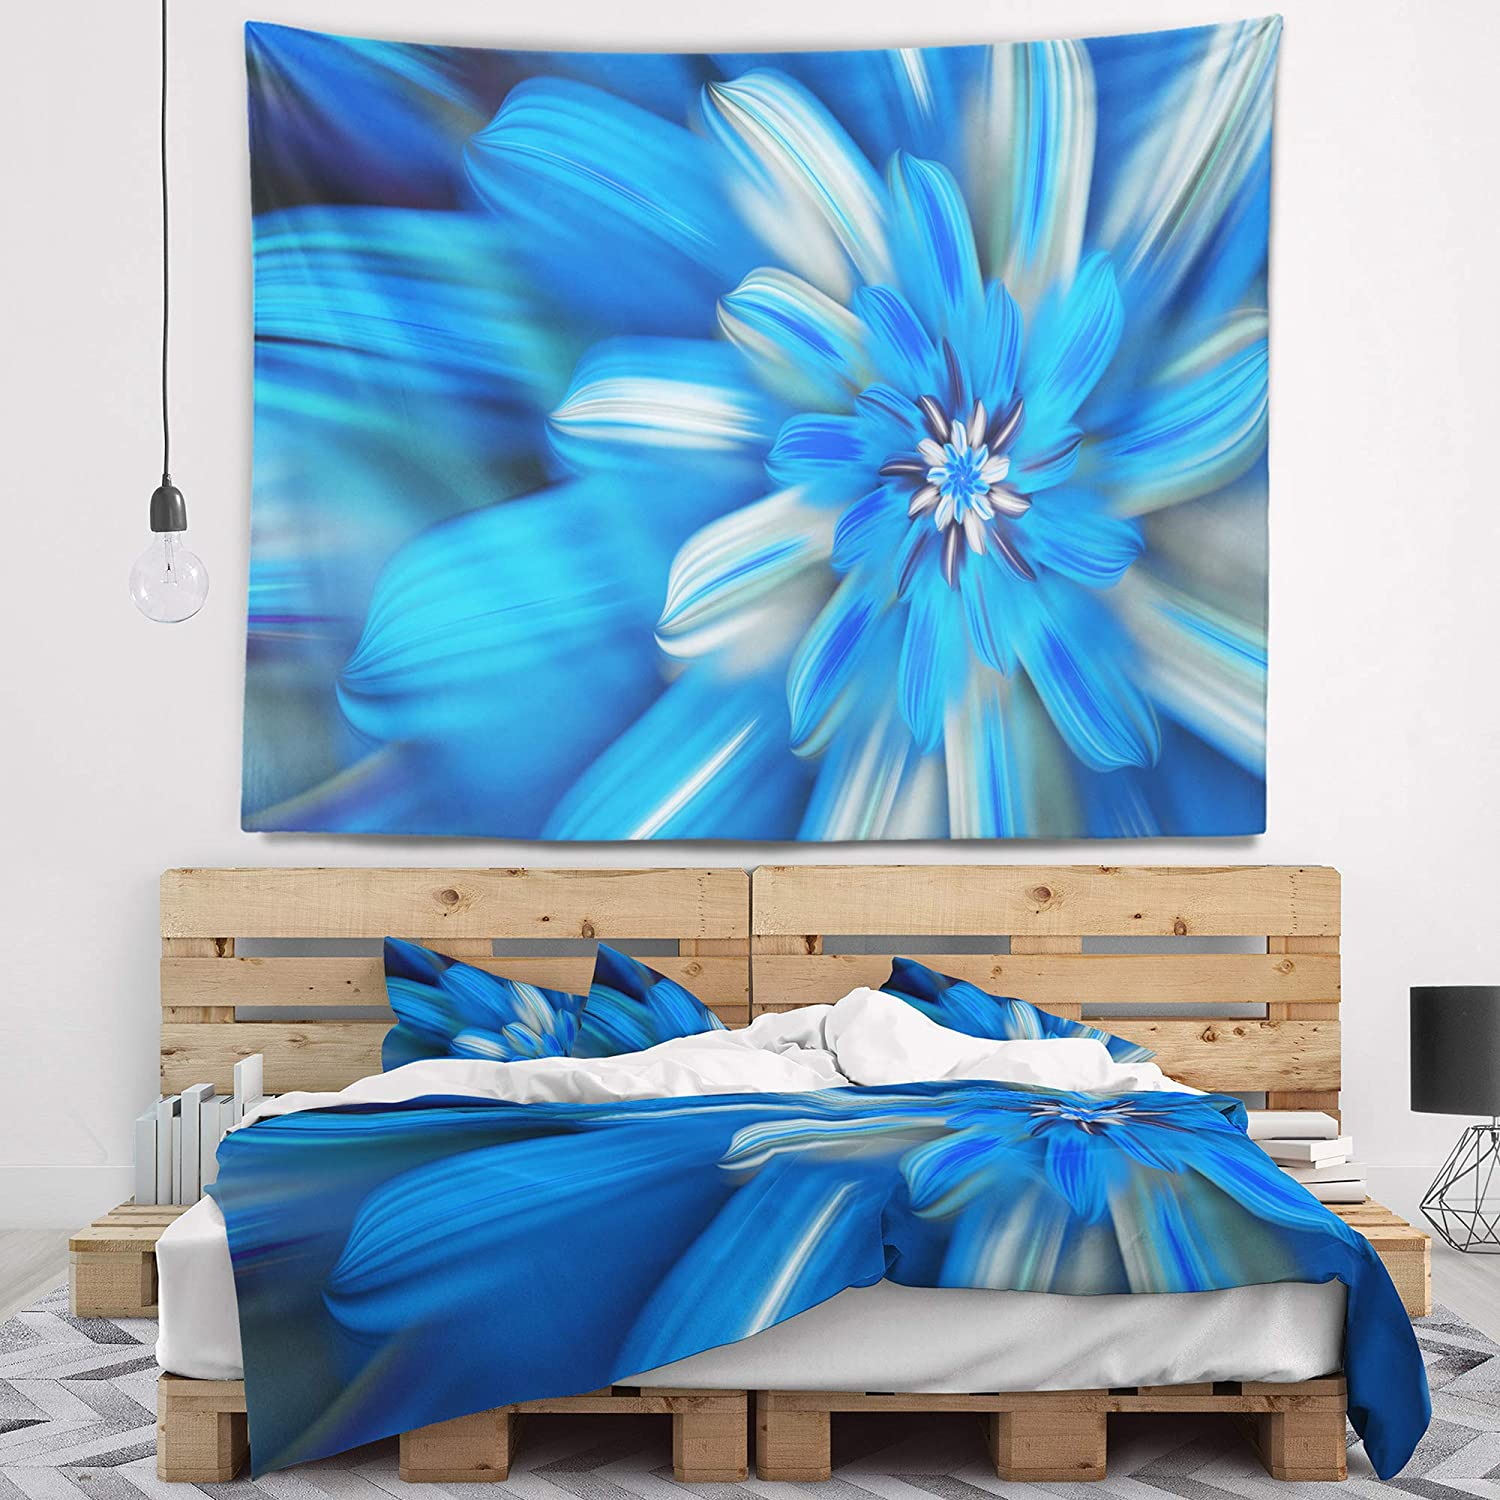 in Designart TAP15580-39-32  Exotic Dance of Blue Flower Petals Floral Blanket D/écor Art for Home and Office Wall Tapestry Medium x 32 in 39 in